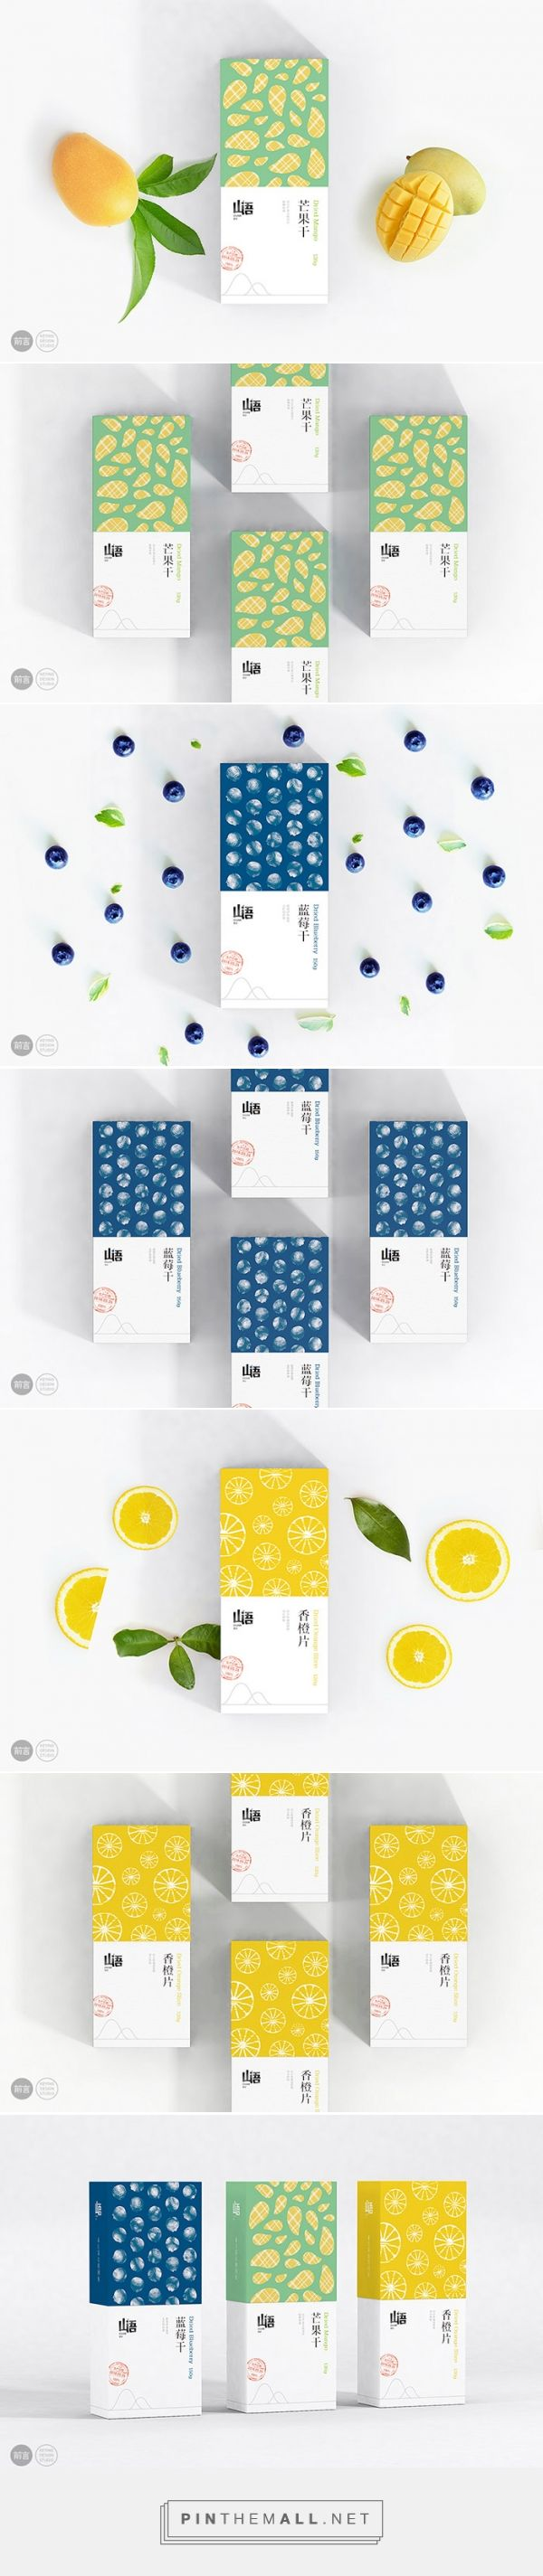 SHAN YU dried fruit by Keying Designs. Source: Daily Package Design Inspiration